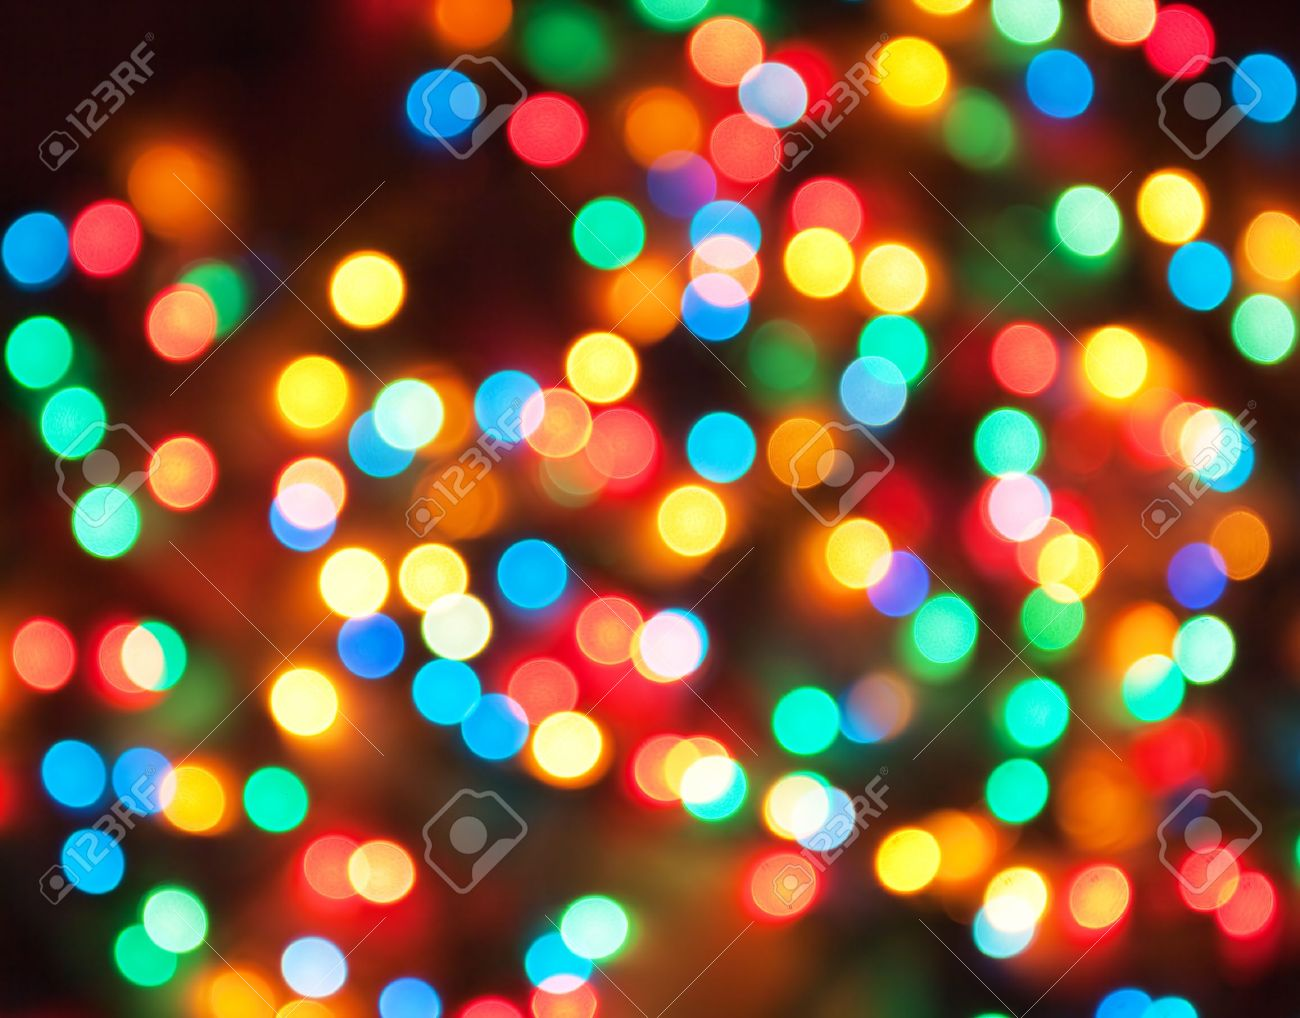 abstract holiday background, defocused lights - 8350259